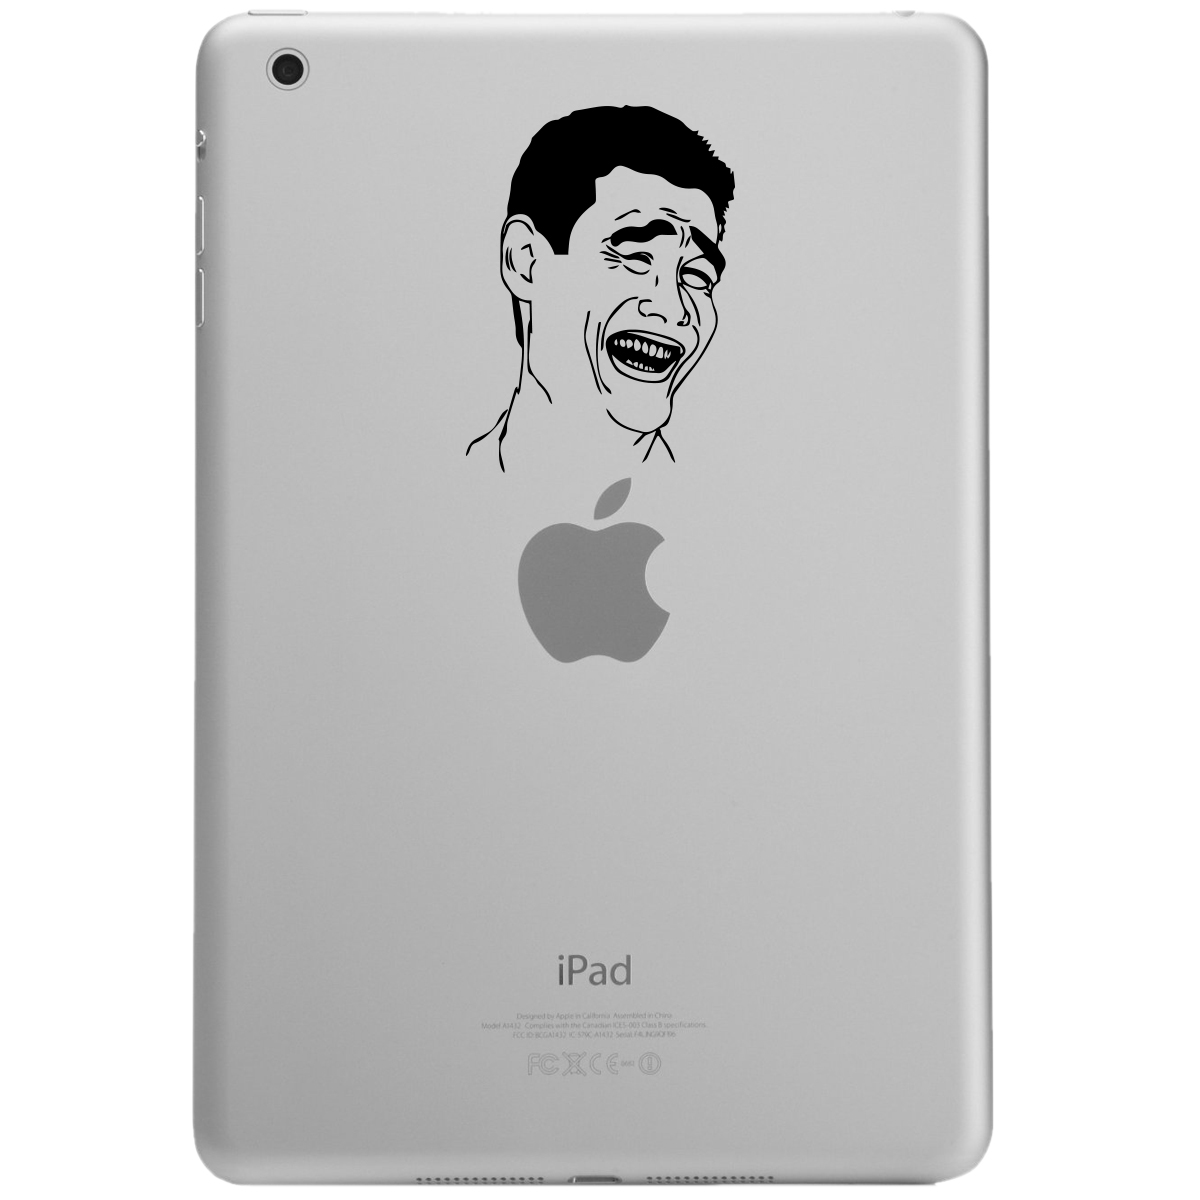 Yao Ming Bitch Please Meme Face iPad Tablet Vinyl Sticker Decal